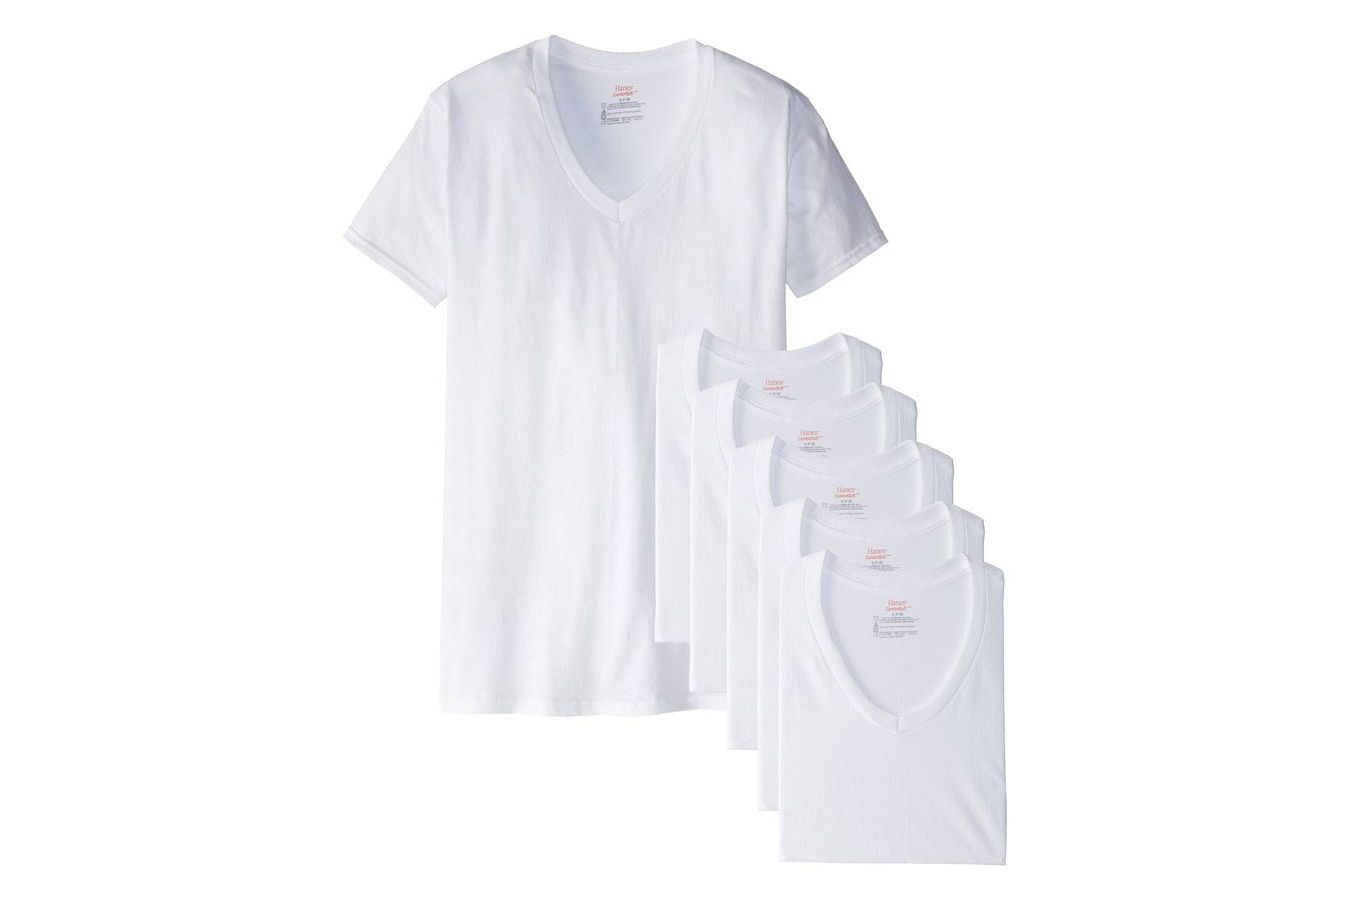 Black t shirt v shape -  The Best White Tee Has Been A Hotly Debated Topic Among My Friends As A Skinny Dude I Ve Been Loyal To The Small Hanes V Neck For Years